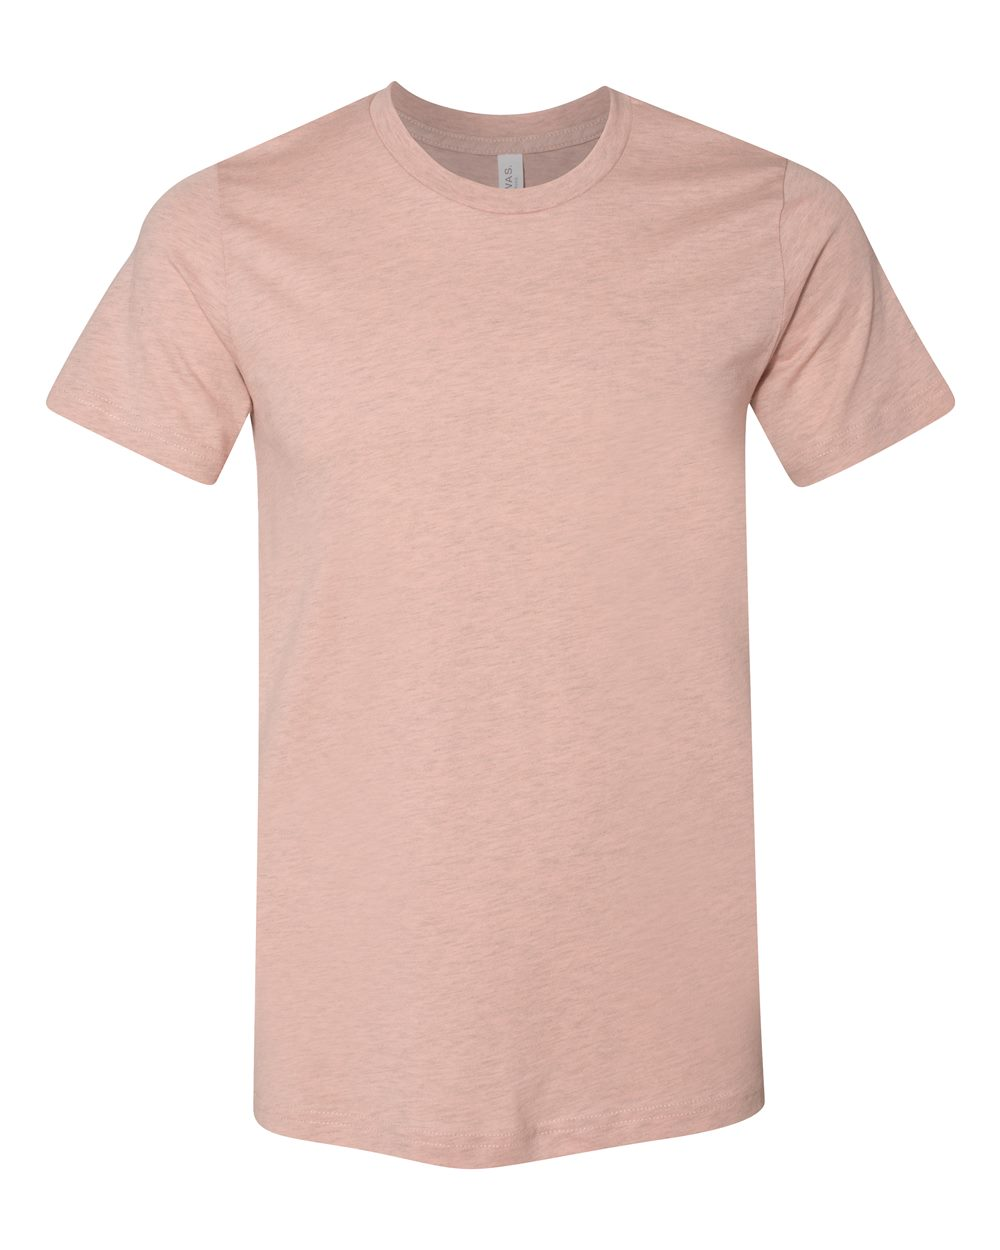 click to view Heather Prism Peach